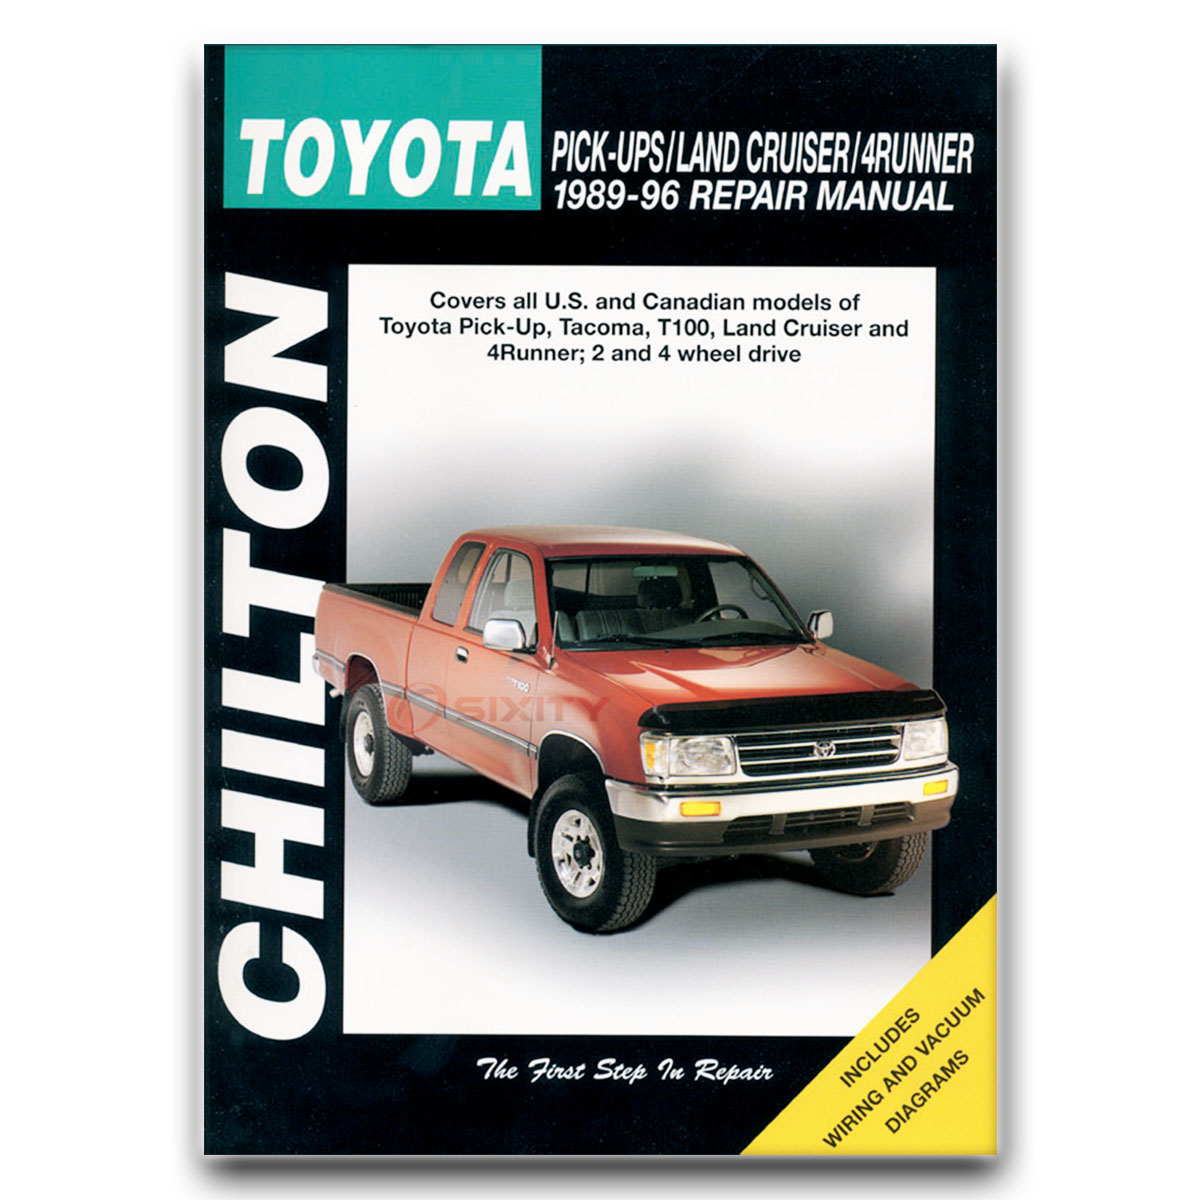 Chilton Repair Manual For Toyota Pickup Sr5 Base Dlx Shop Service Fj Cruiser Wiring Diagram Together With 1994 22re Vacuum Garage Boo Je